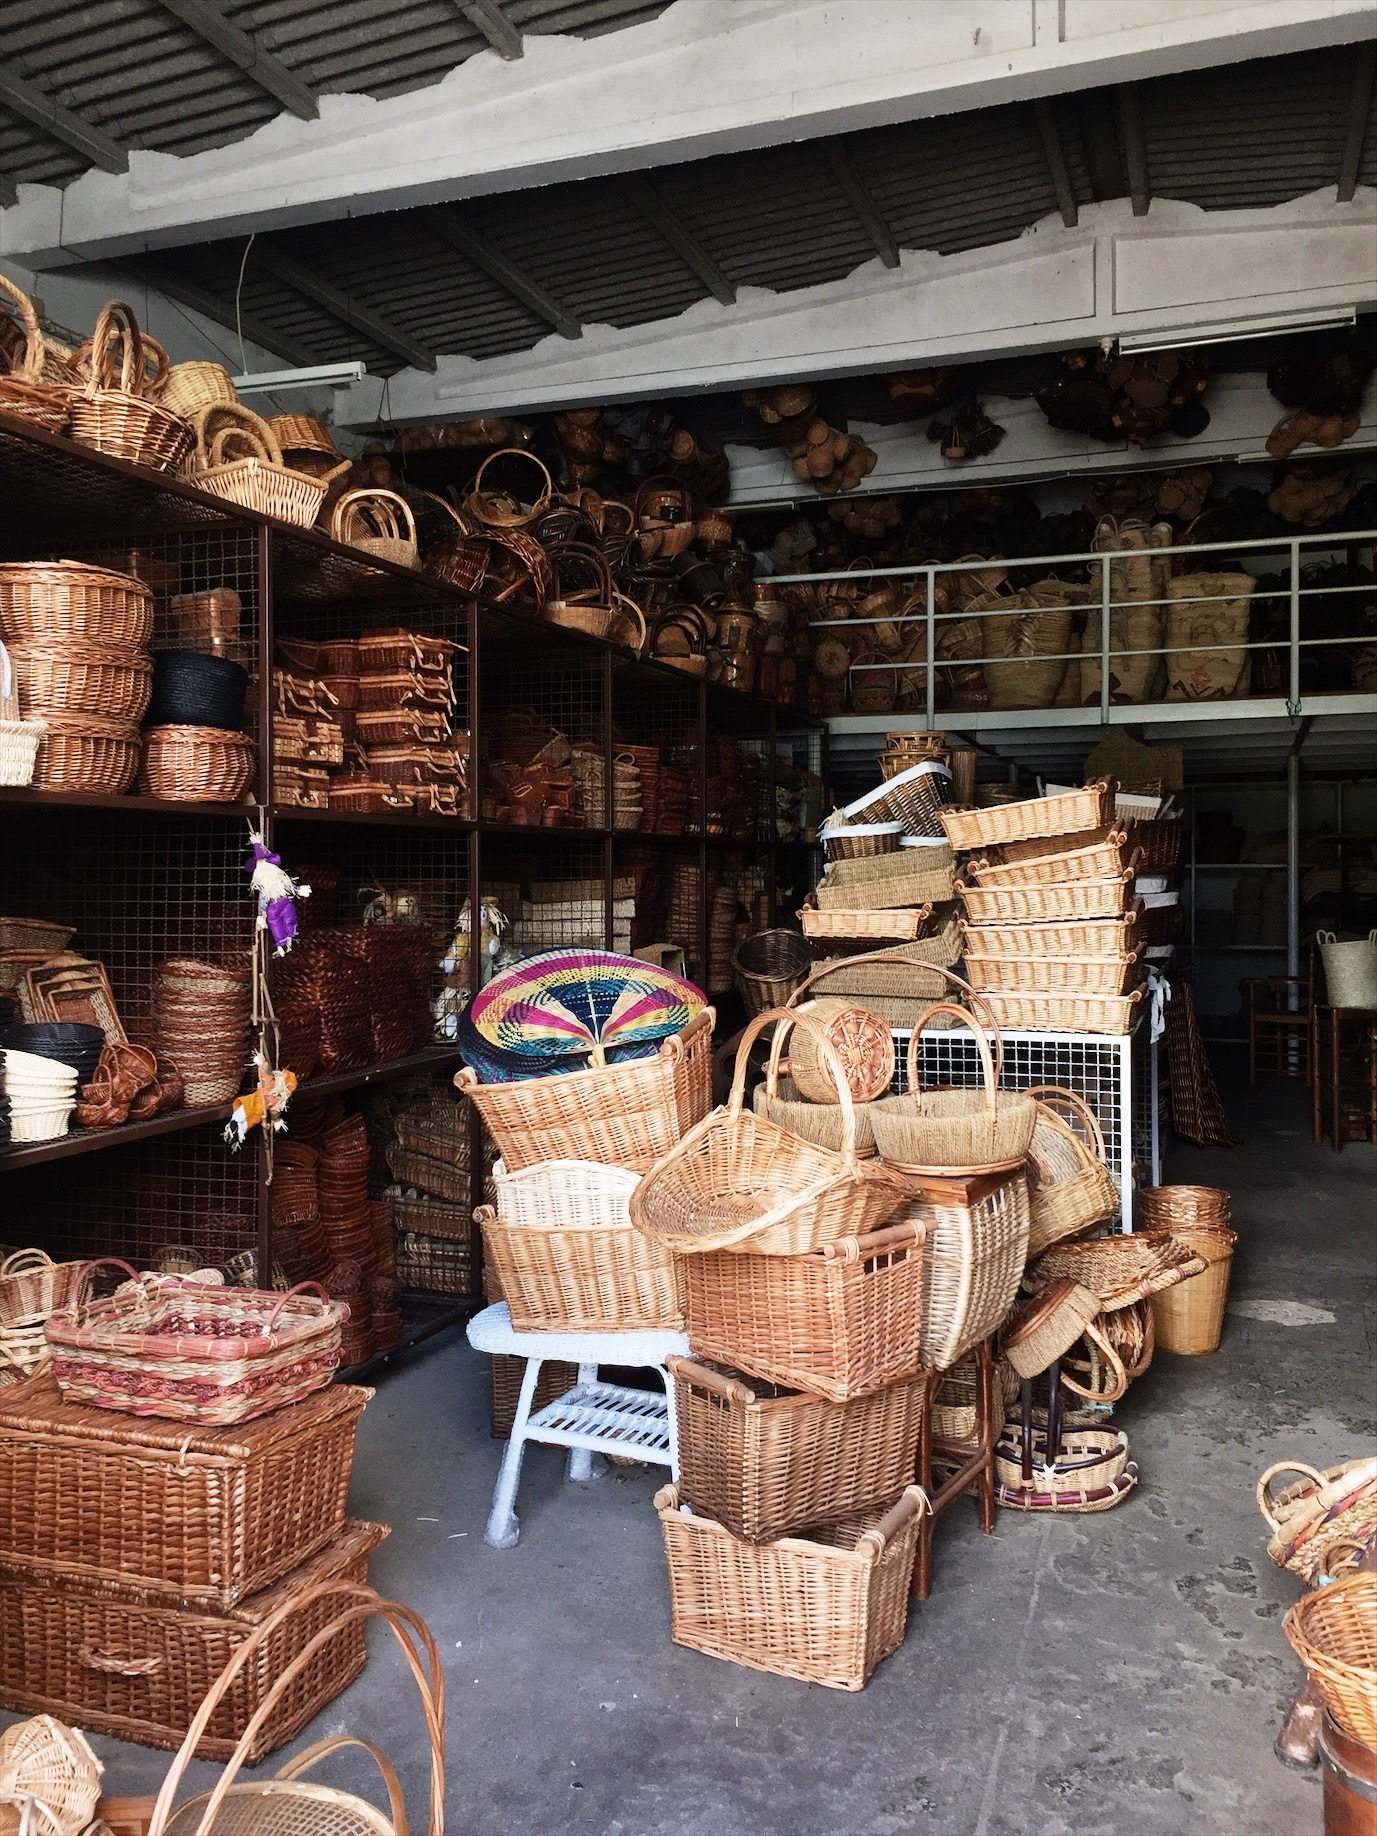 again, the stores with thousands of baskets (Im always looking for any new additions to The Beaux Store) but I always leave empty handed bc I just prefer the artisanal baskets local to the Algarve.